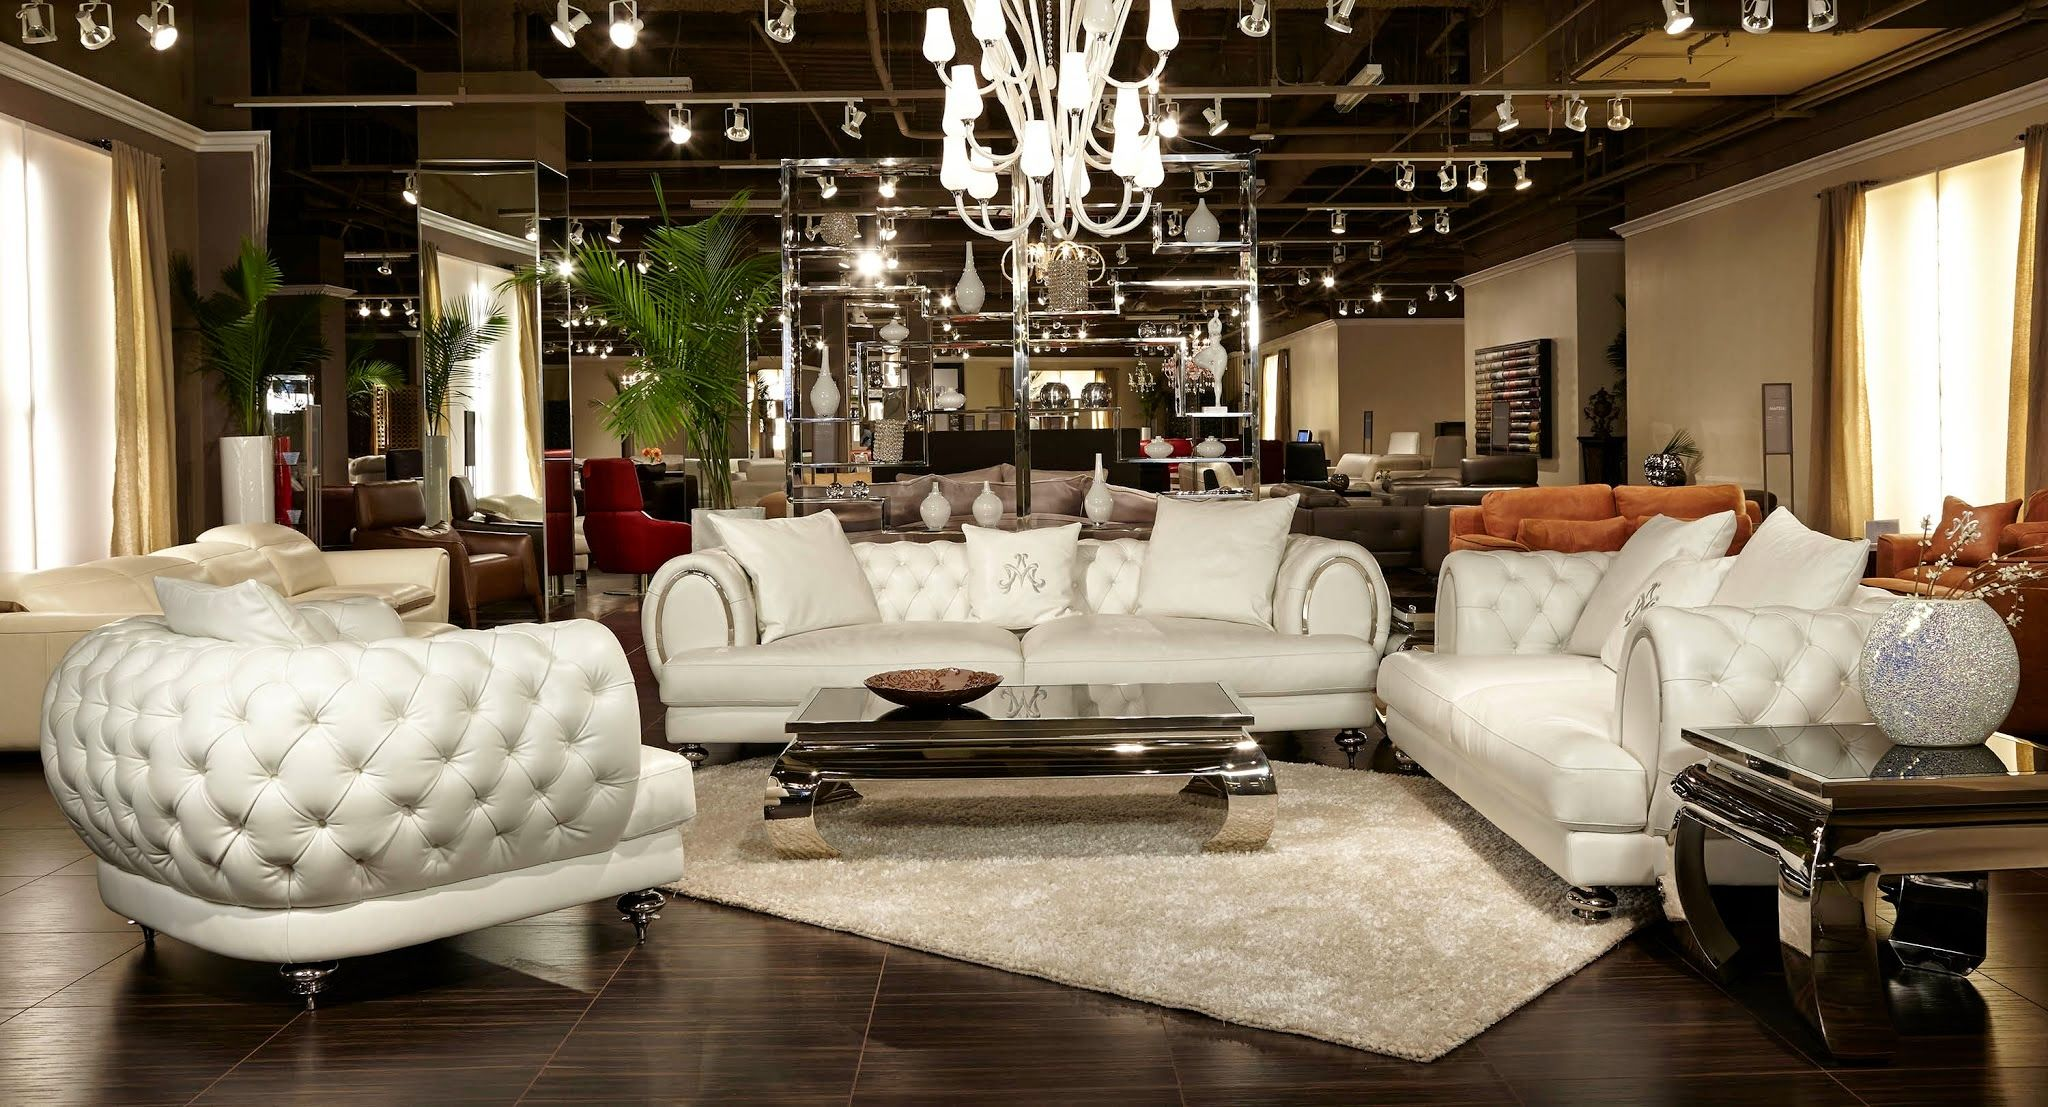 Top sofas to improve your interior design sofas ideas